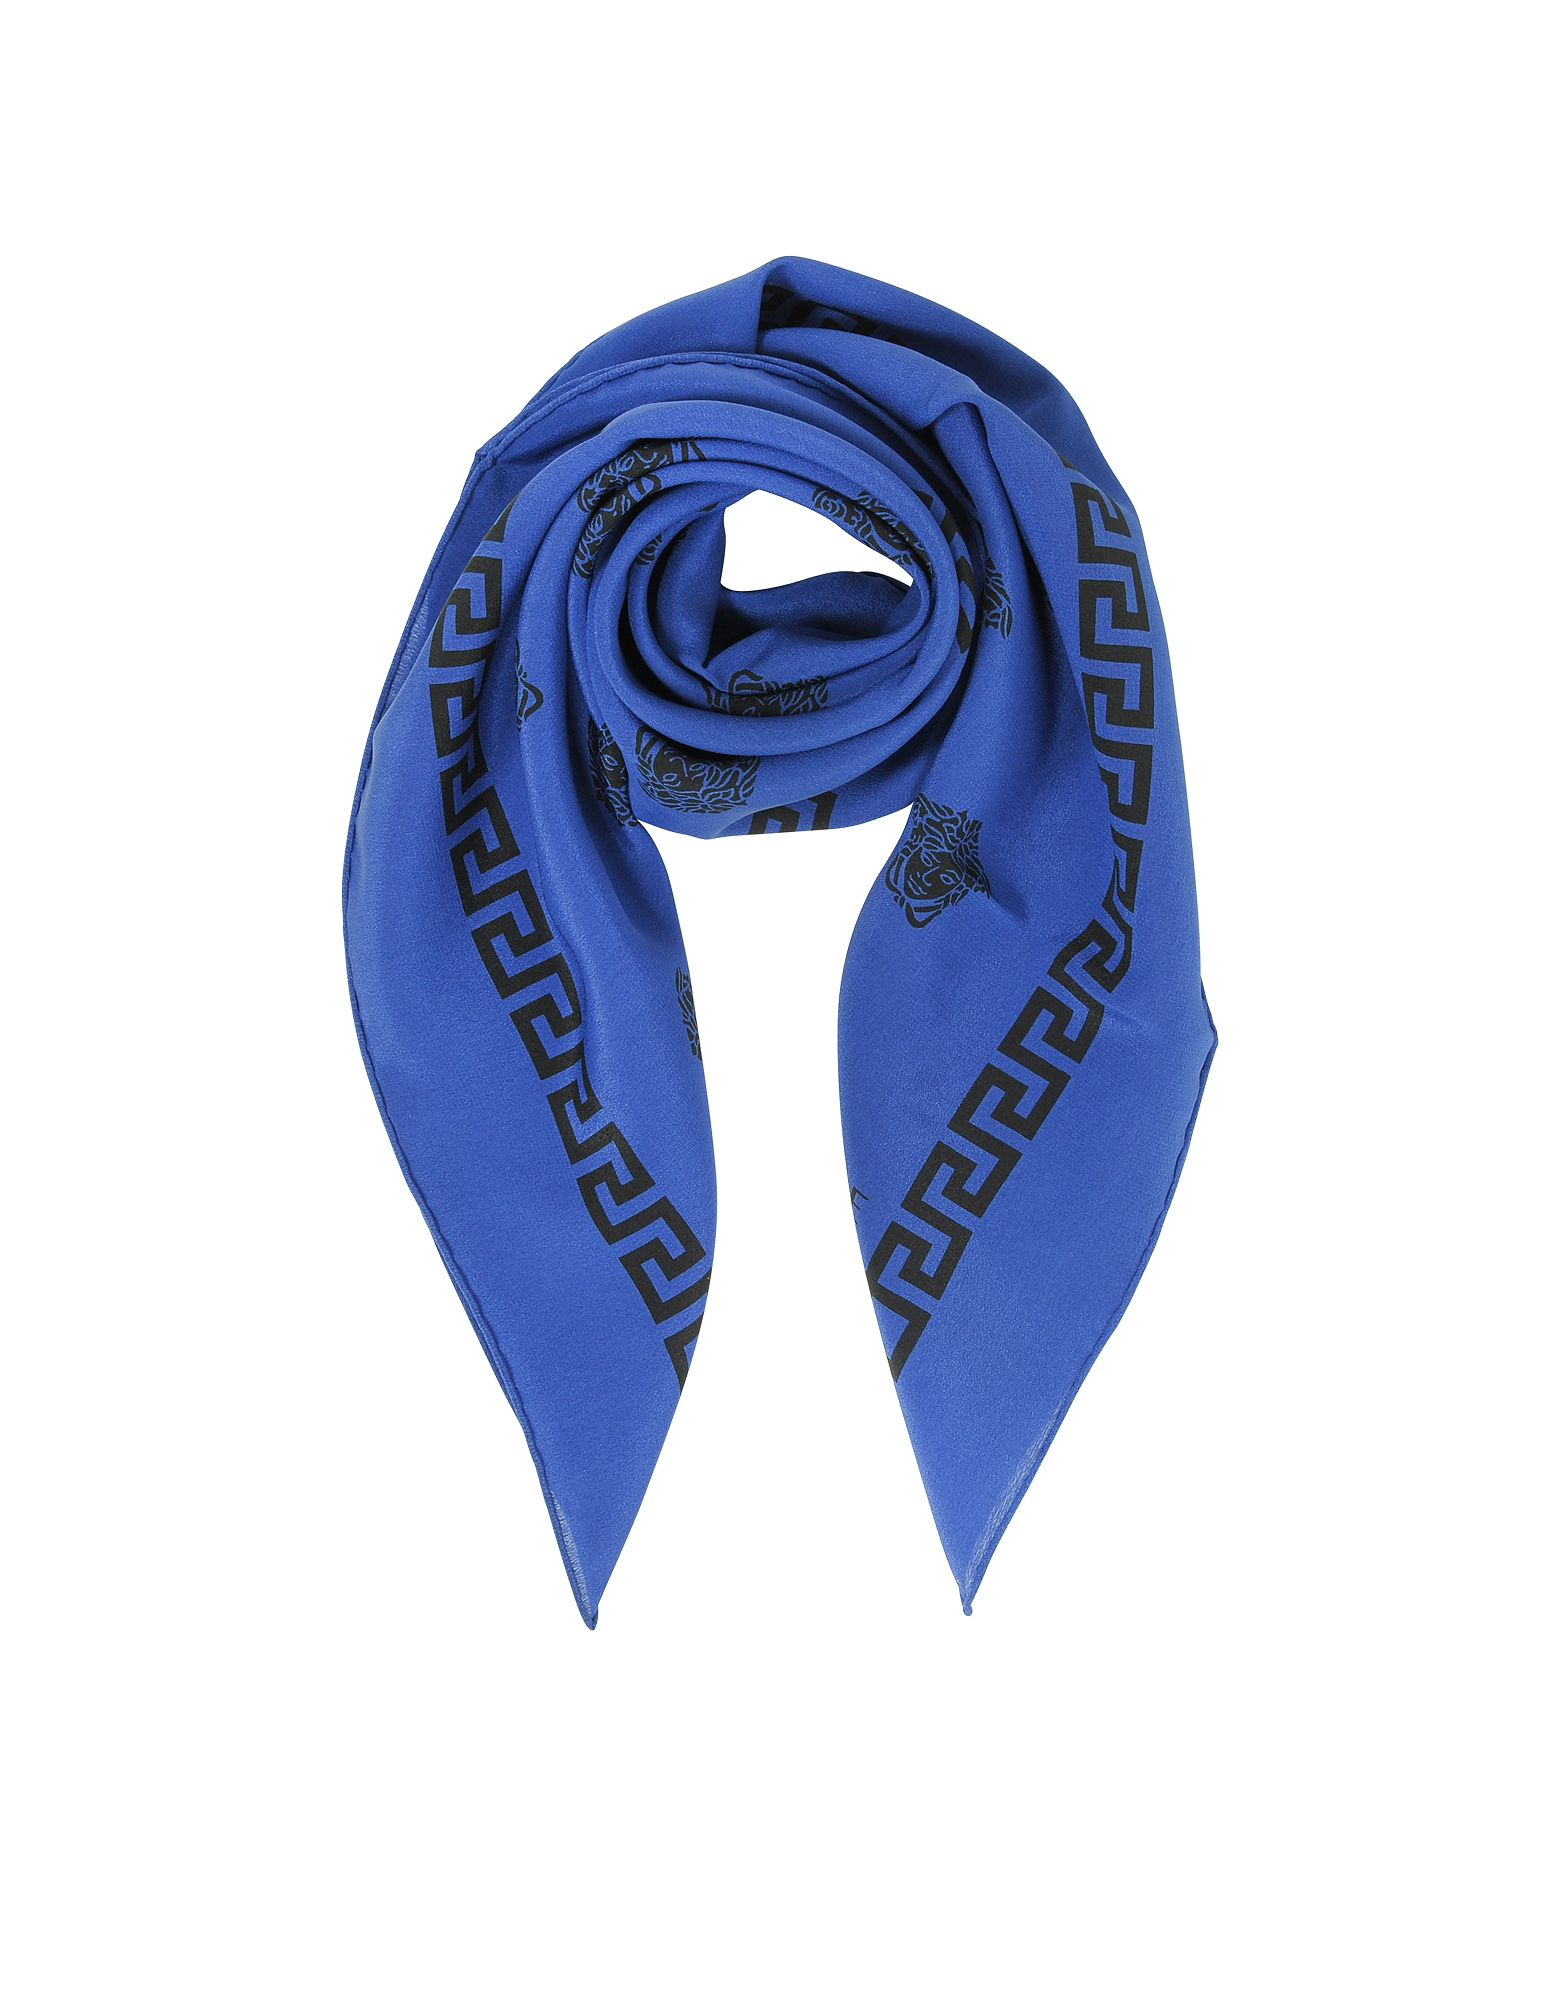 Versace Square Scarves, Bluette and Black Greek Medusa Print Silk Square Scarf